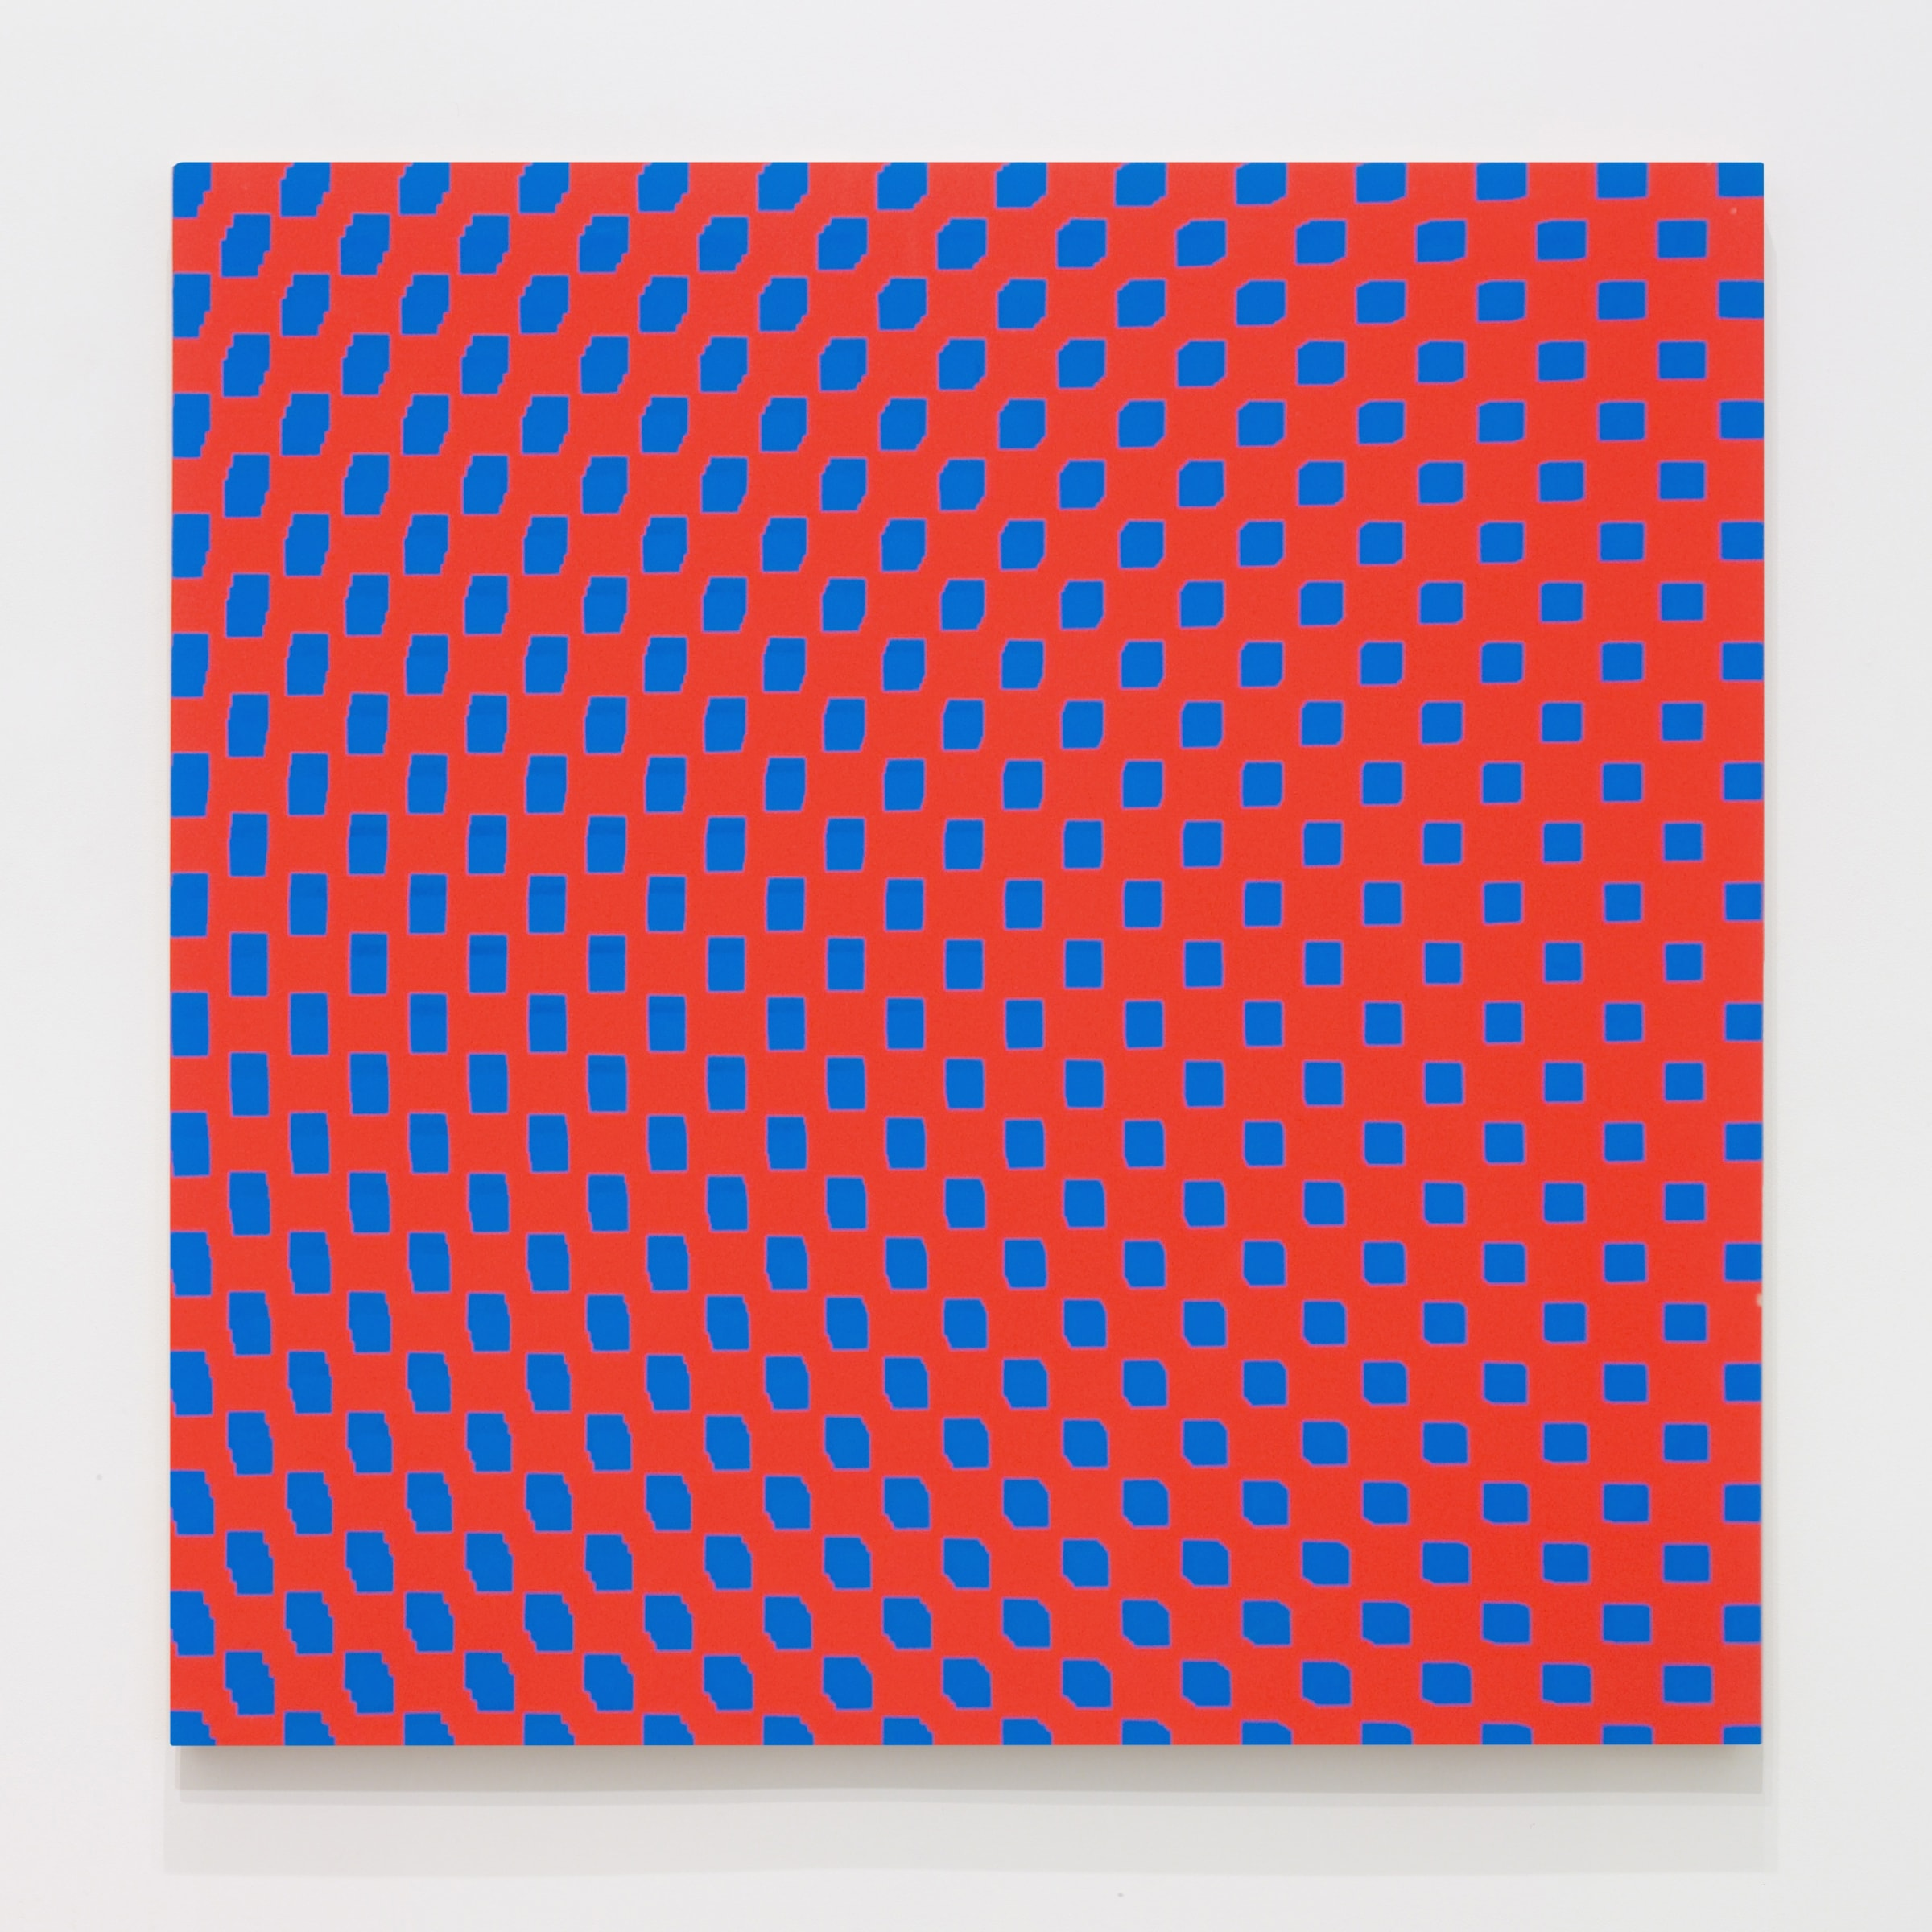 "<span class=""link fancybox-details-link""><a href=""/artists/121-francois-morellet/works/9430-francois-morellet-3-trames-de-carres-reguliers-pivotees-sur-le-1970/"">View Detail Page</a></span><div class=""artist""><span class=""artist""><strong>FRANCOIS MORELLET</strong></span></div>